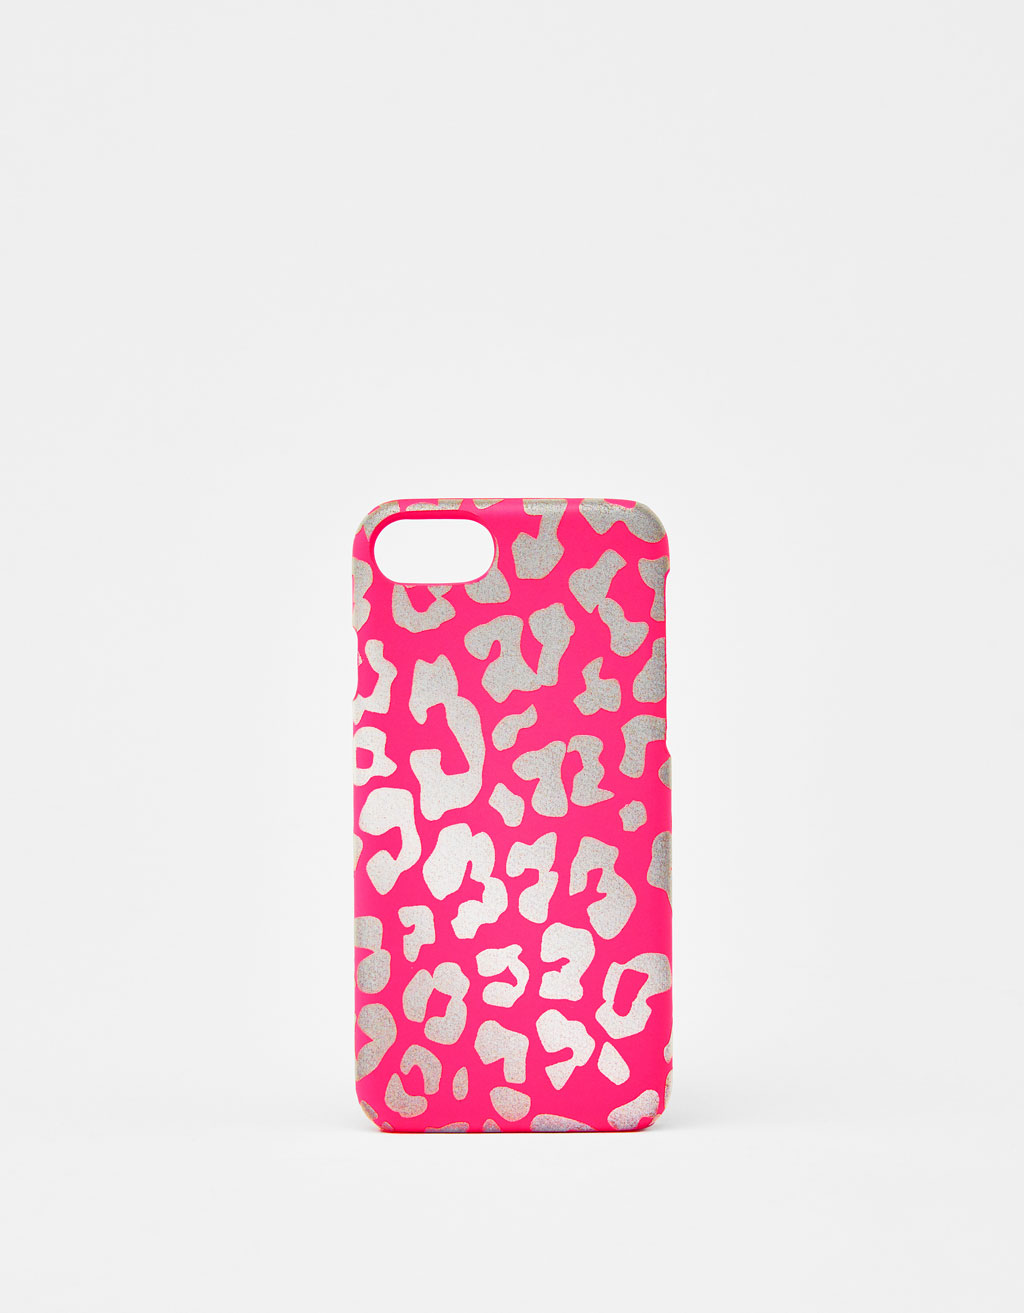 Reflective leopard print iPhone 6 / 6S / 7 / 8 case